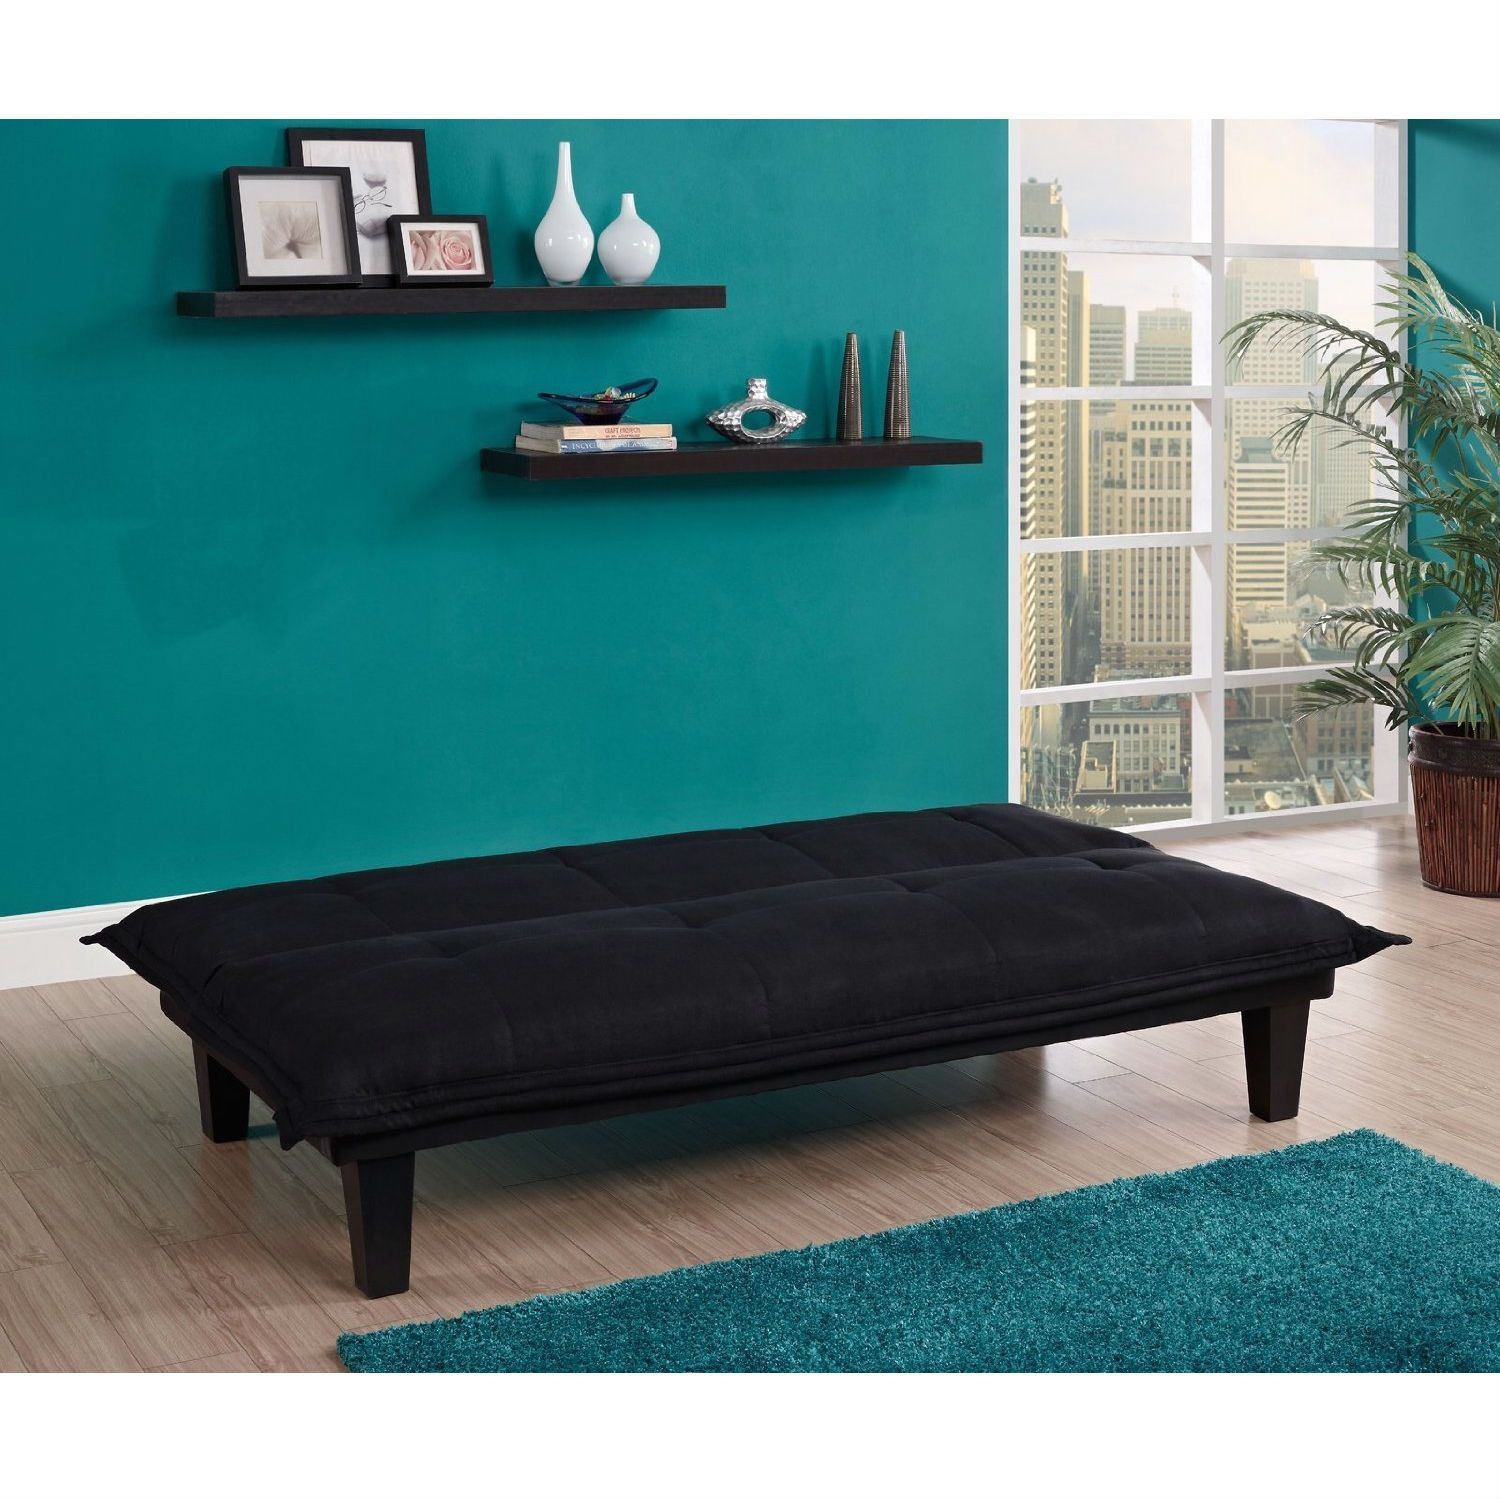 Black Microfiber Click-Clack Sleeper Sofa Bed Futon Lounger | Pinterest